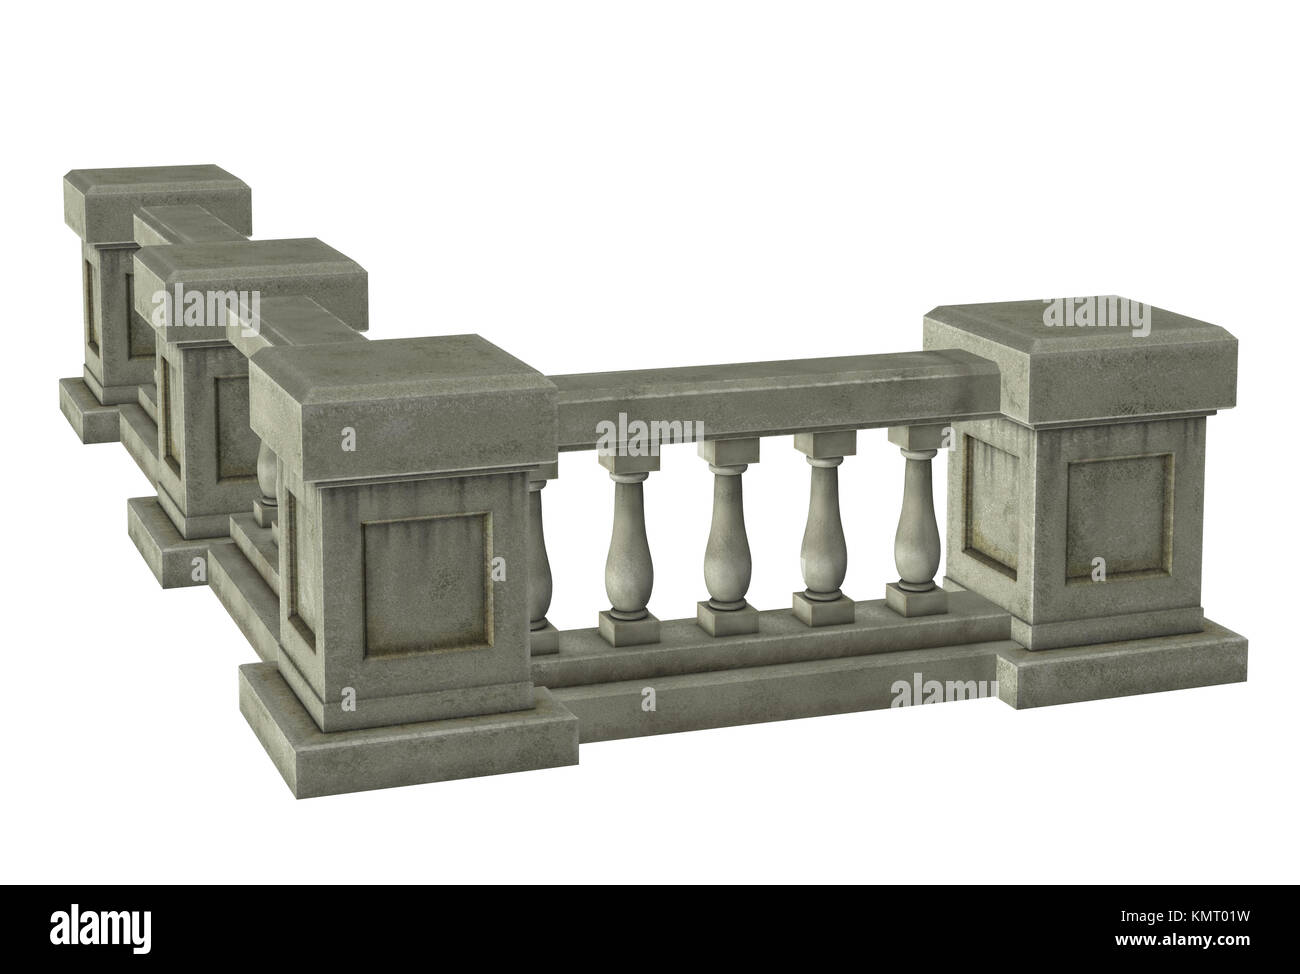 Column with railings - Stock Image